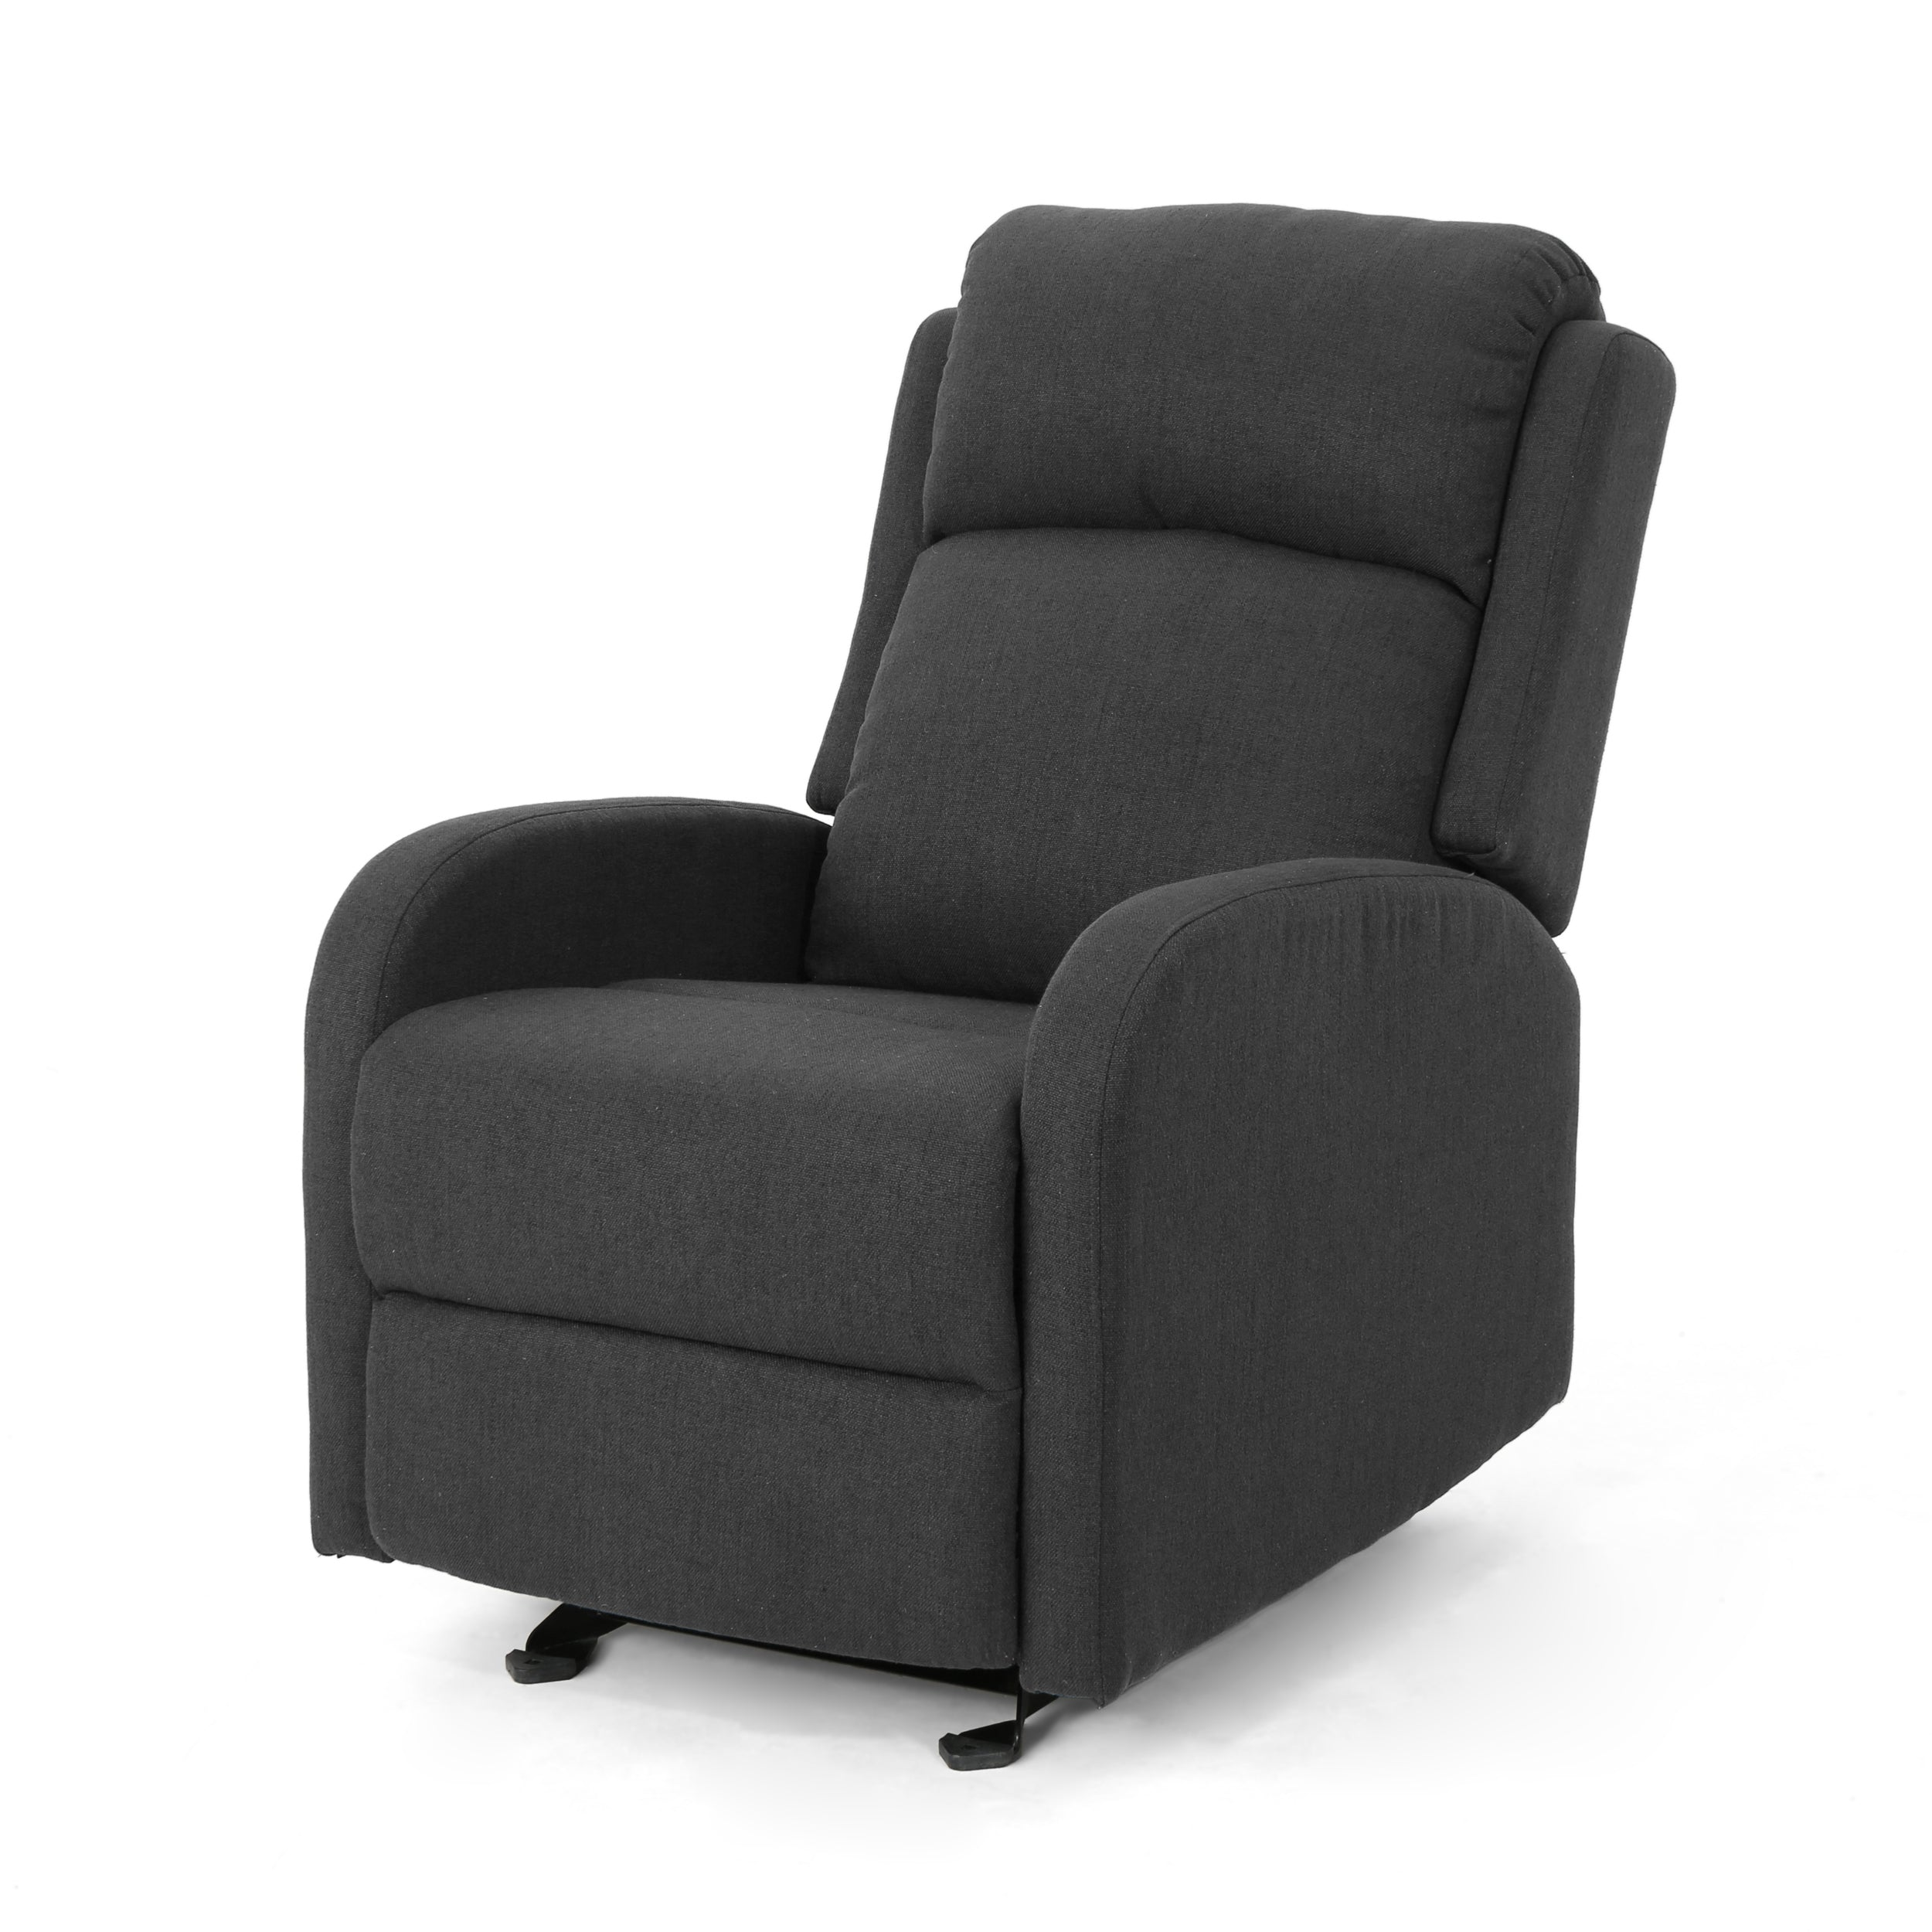 Amallie Fabric Rocking Recliner